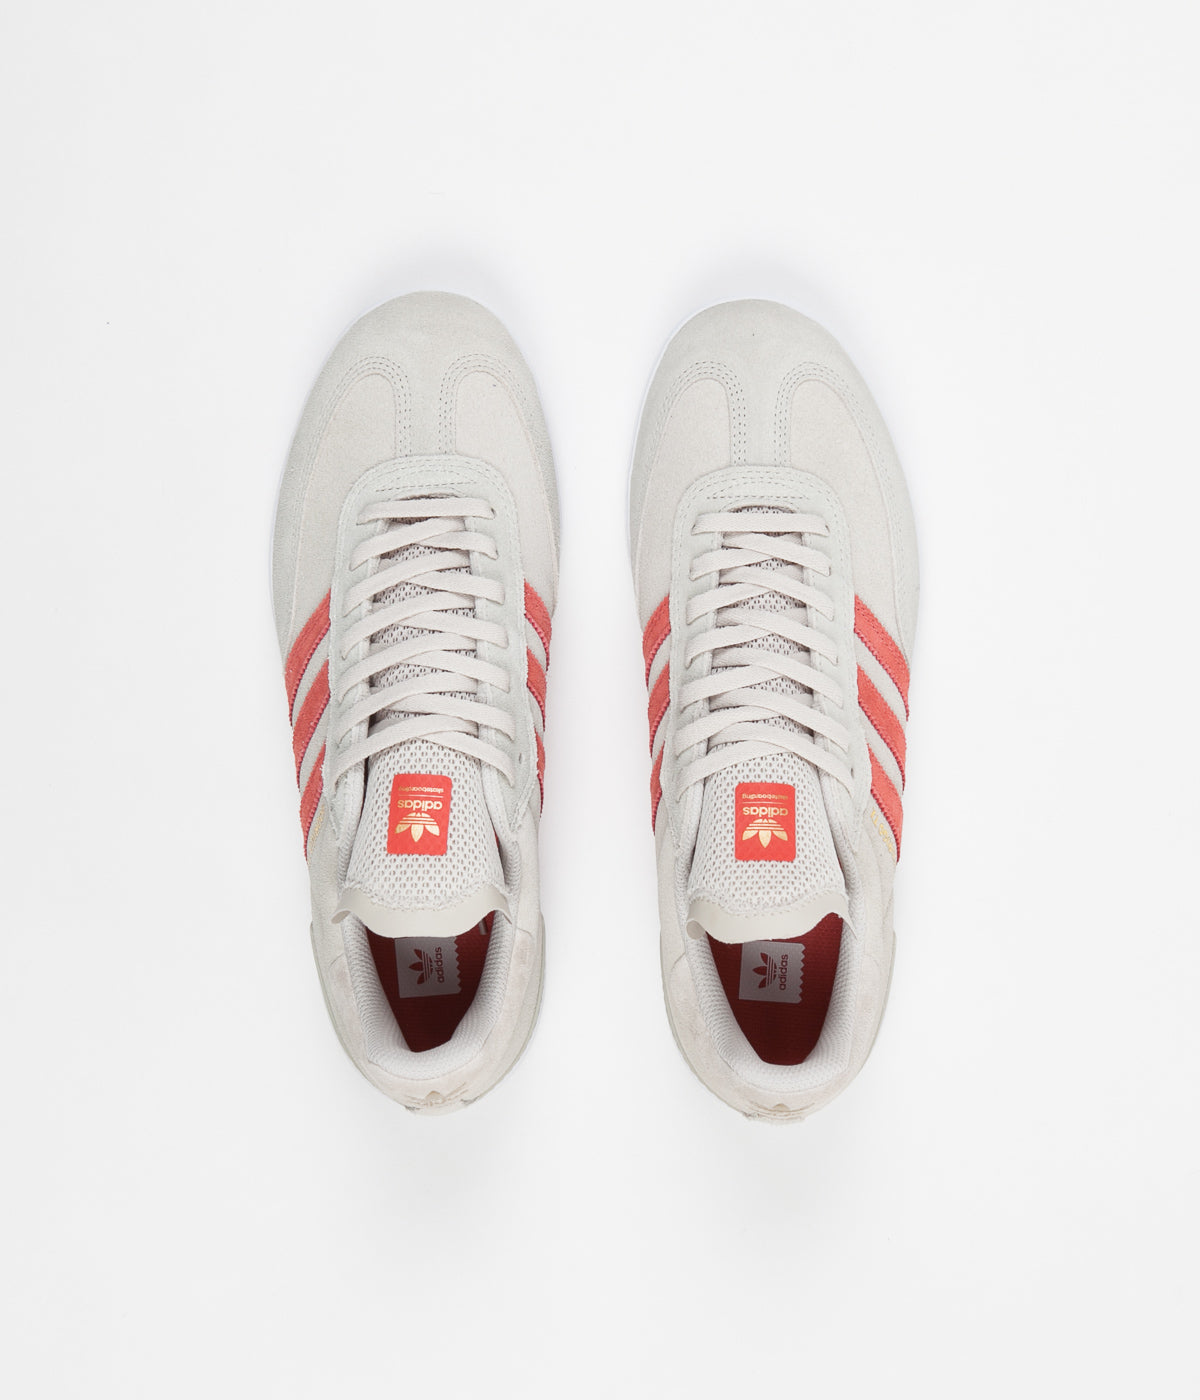 Adidas Samba Adv Shoes - Clear Brown / Trace Scarlet / White